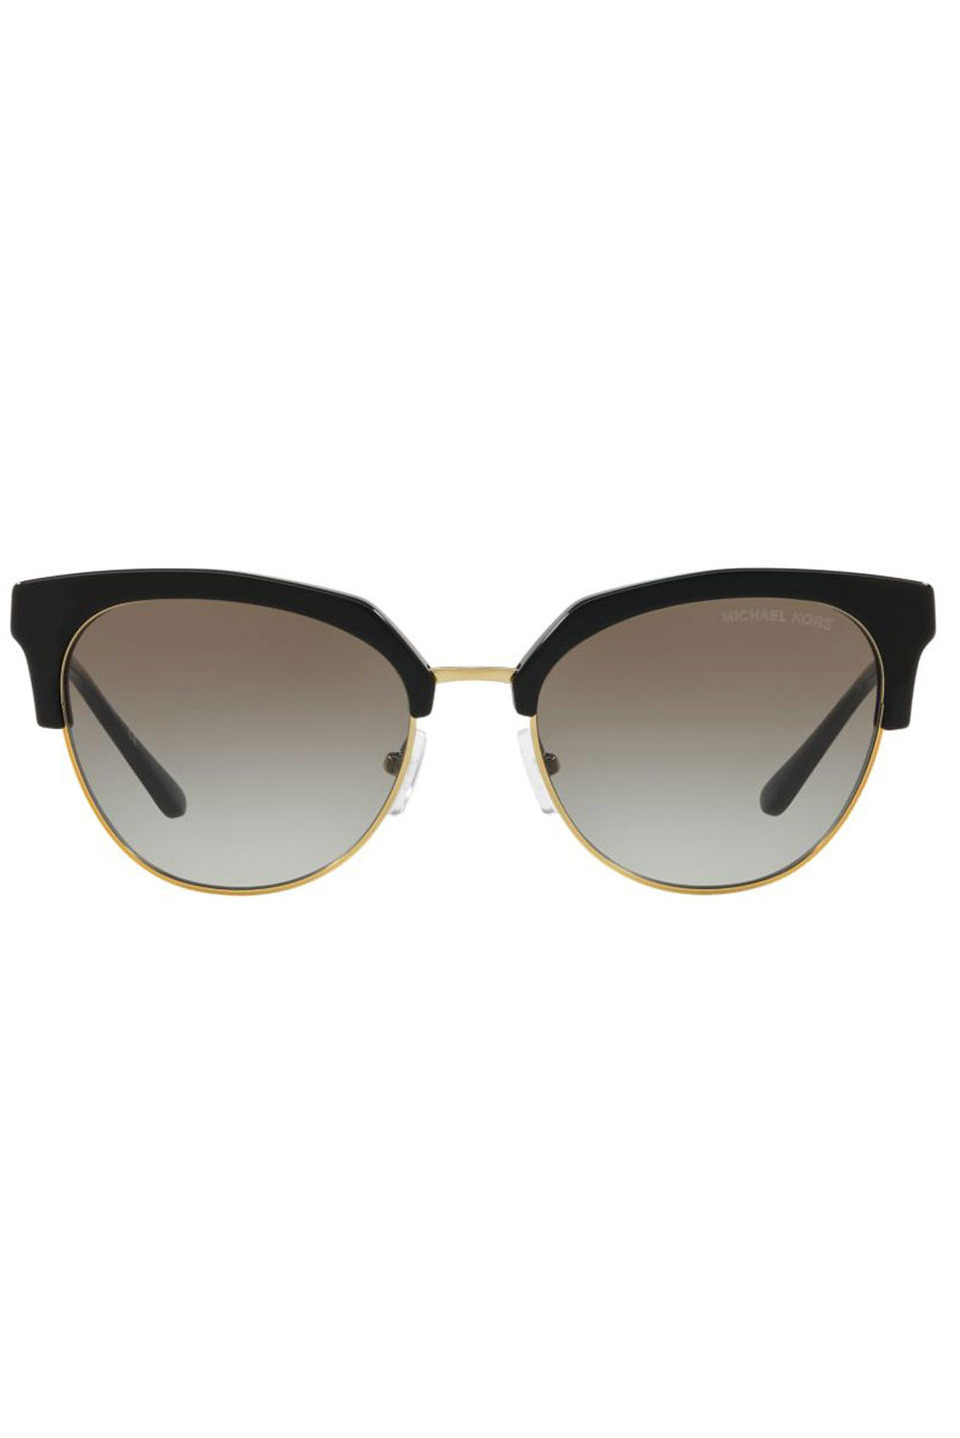 Ladies Sunglasses in Black and Shiny Pale Gold Tone